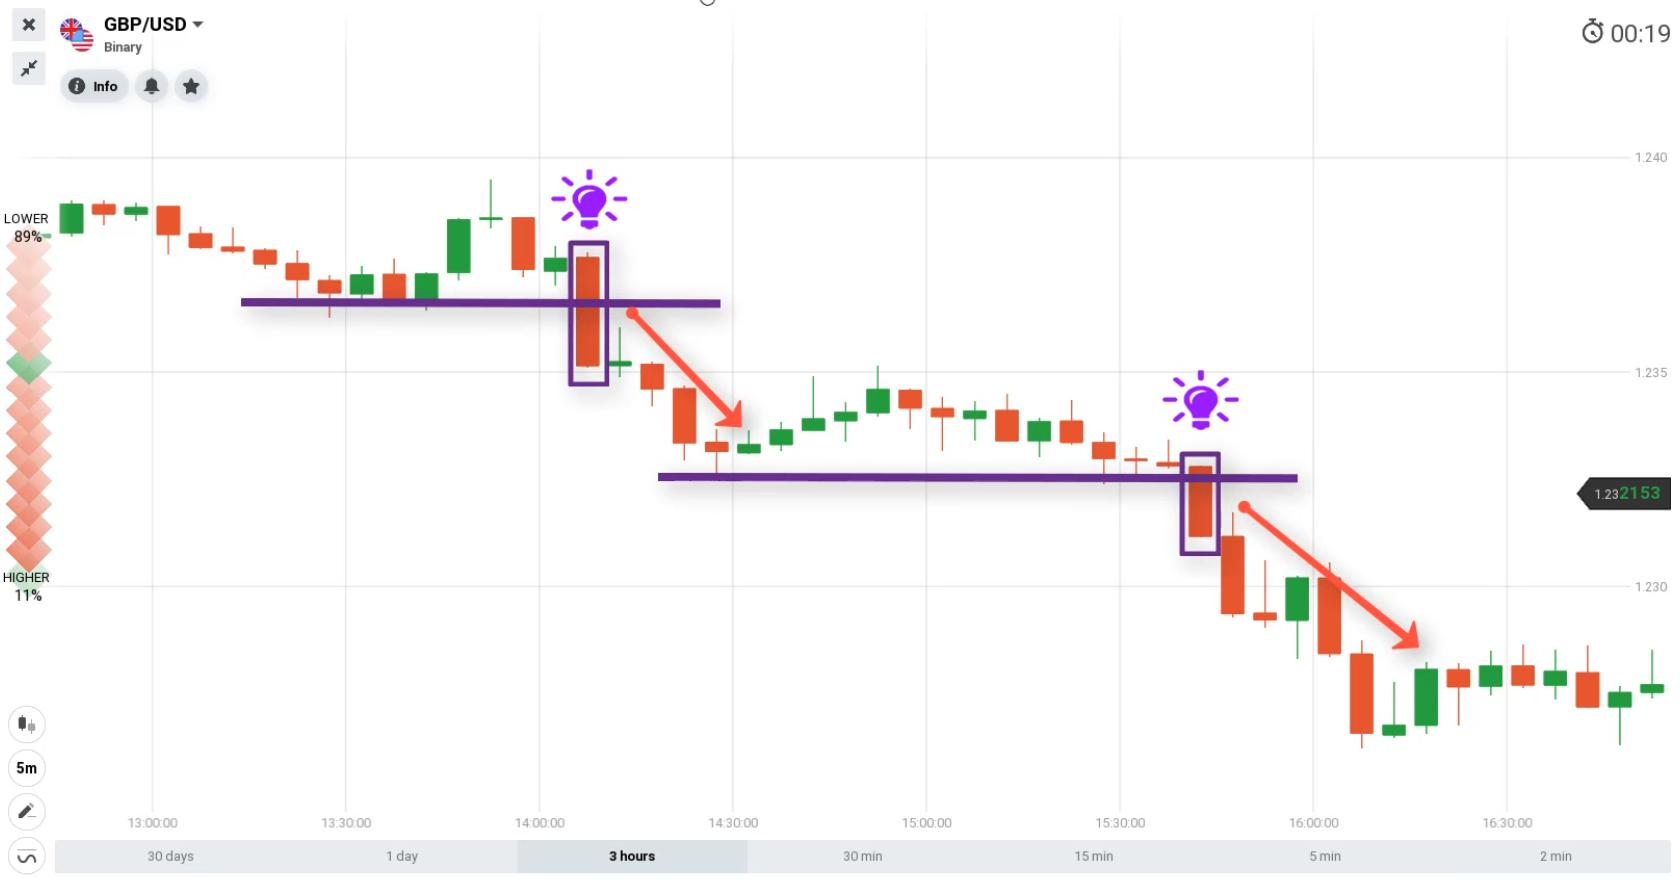 trading doptions binaires le week-end)